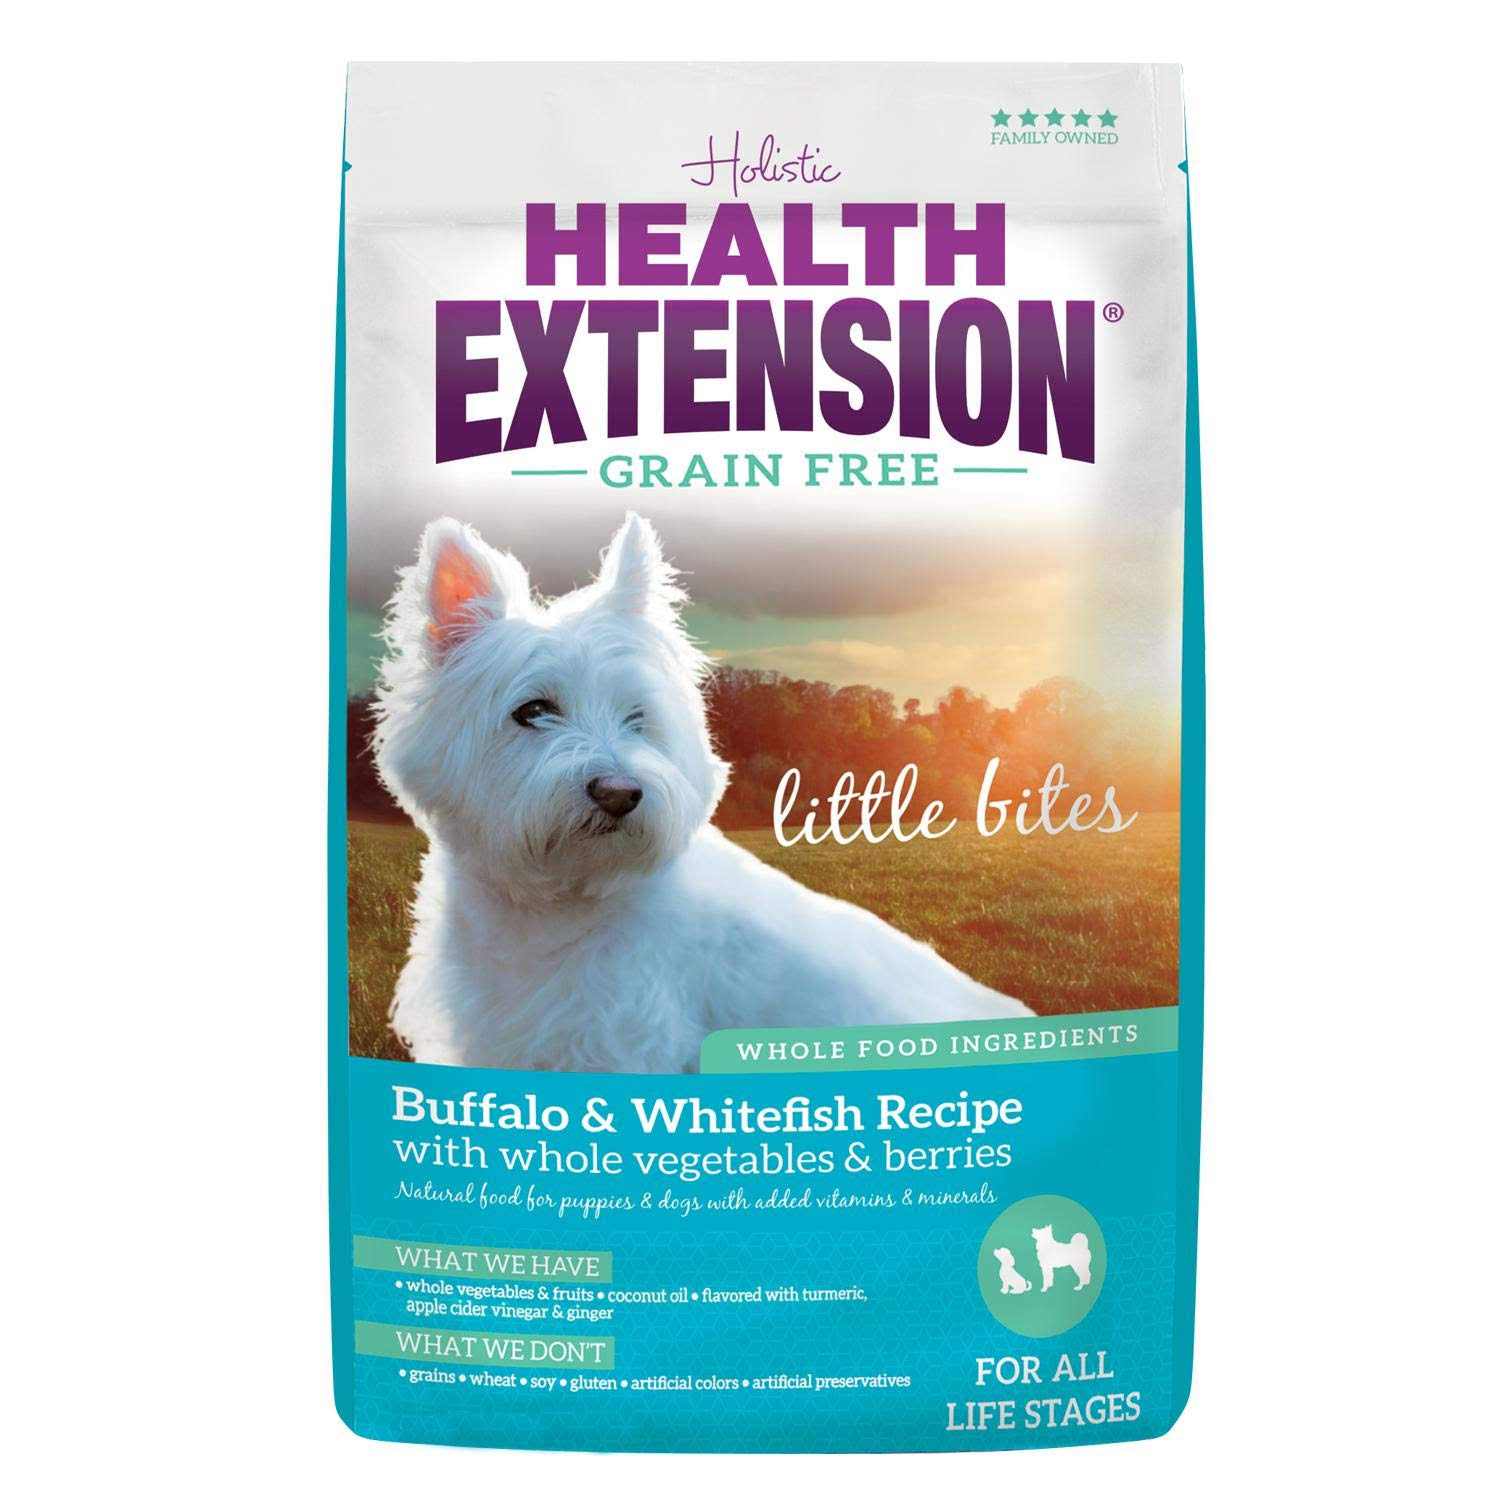 Health Extension Little Bite Dog Food - 4lbs, Buffalo and Whitefish